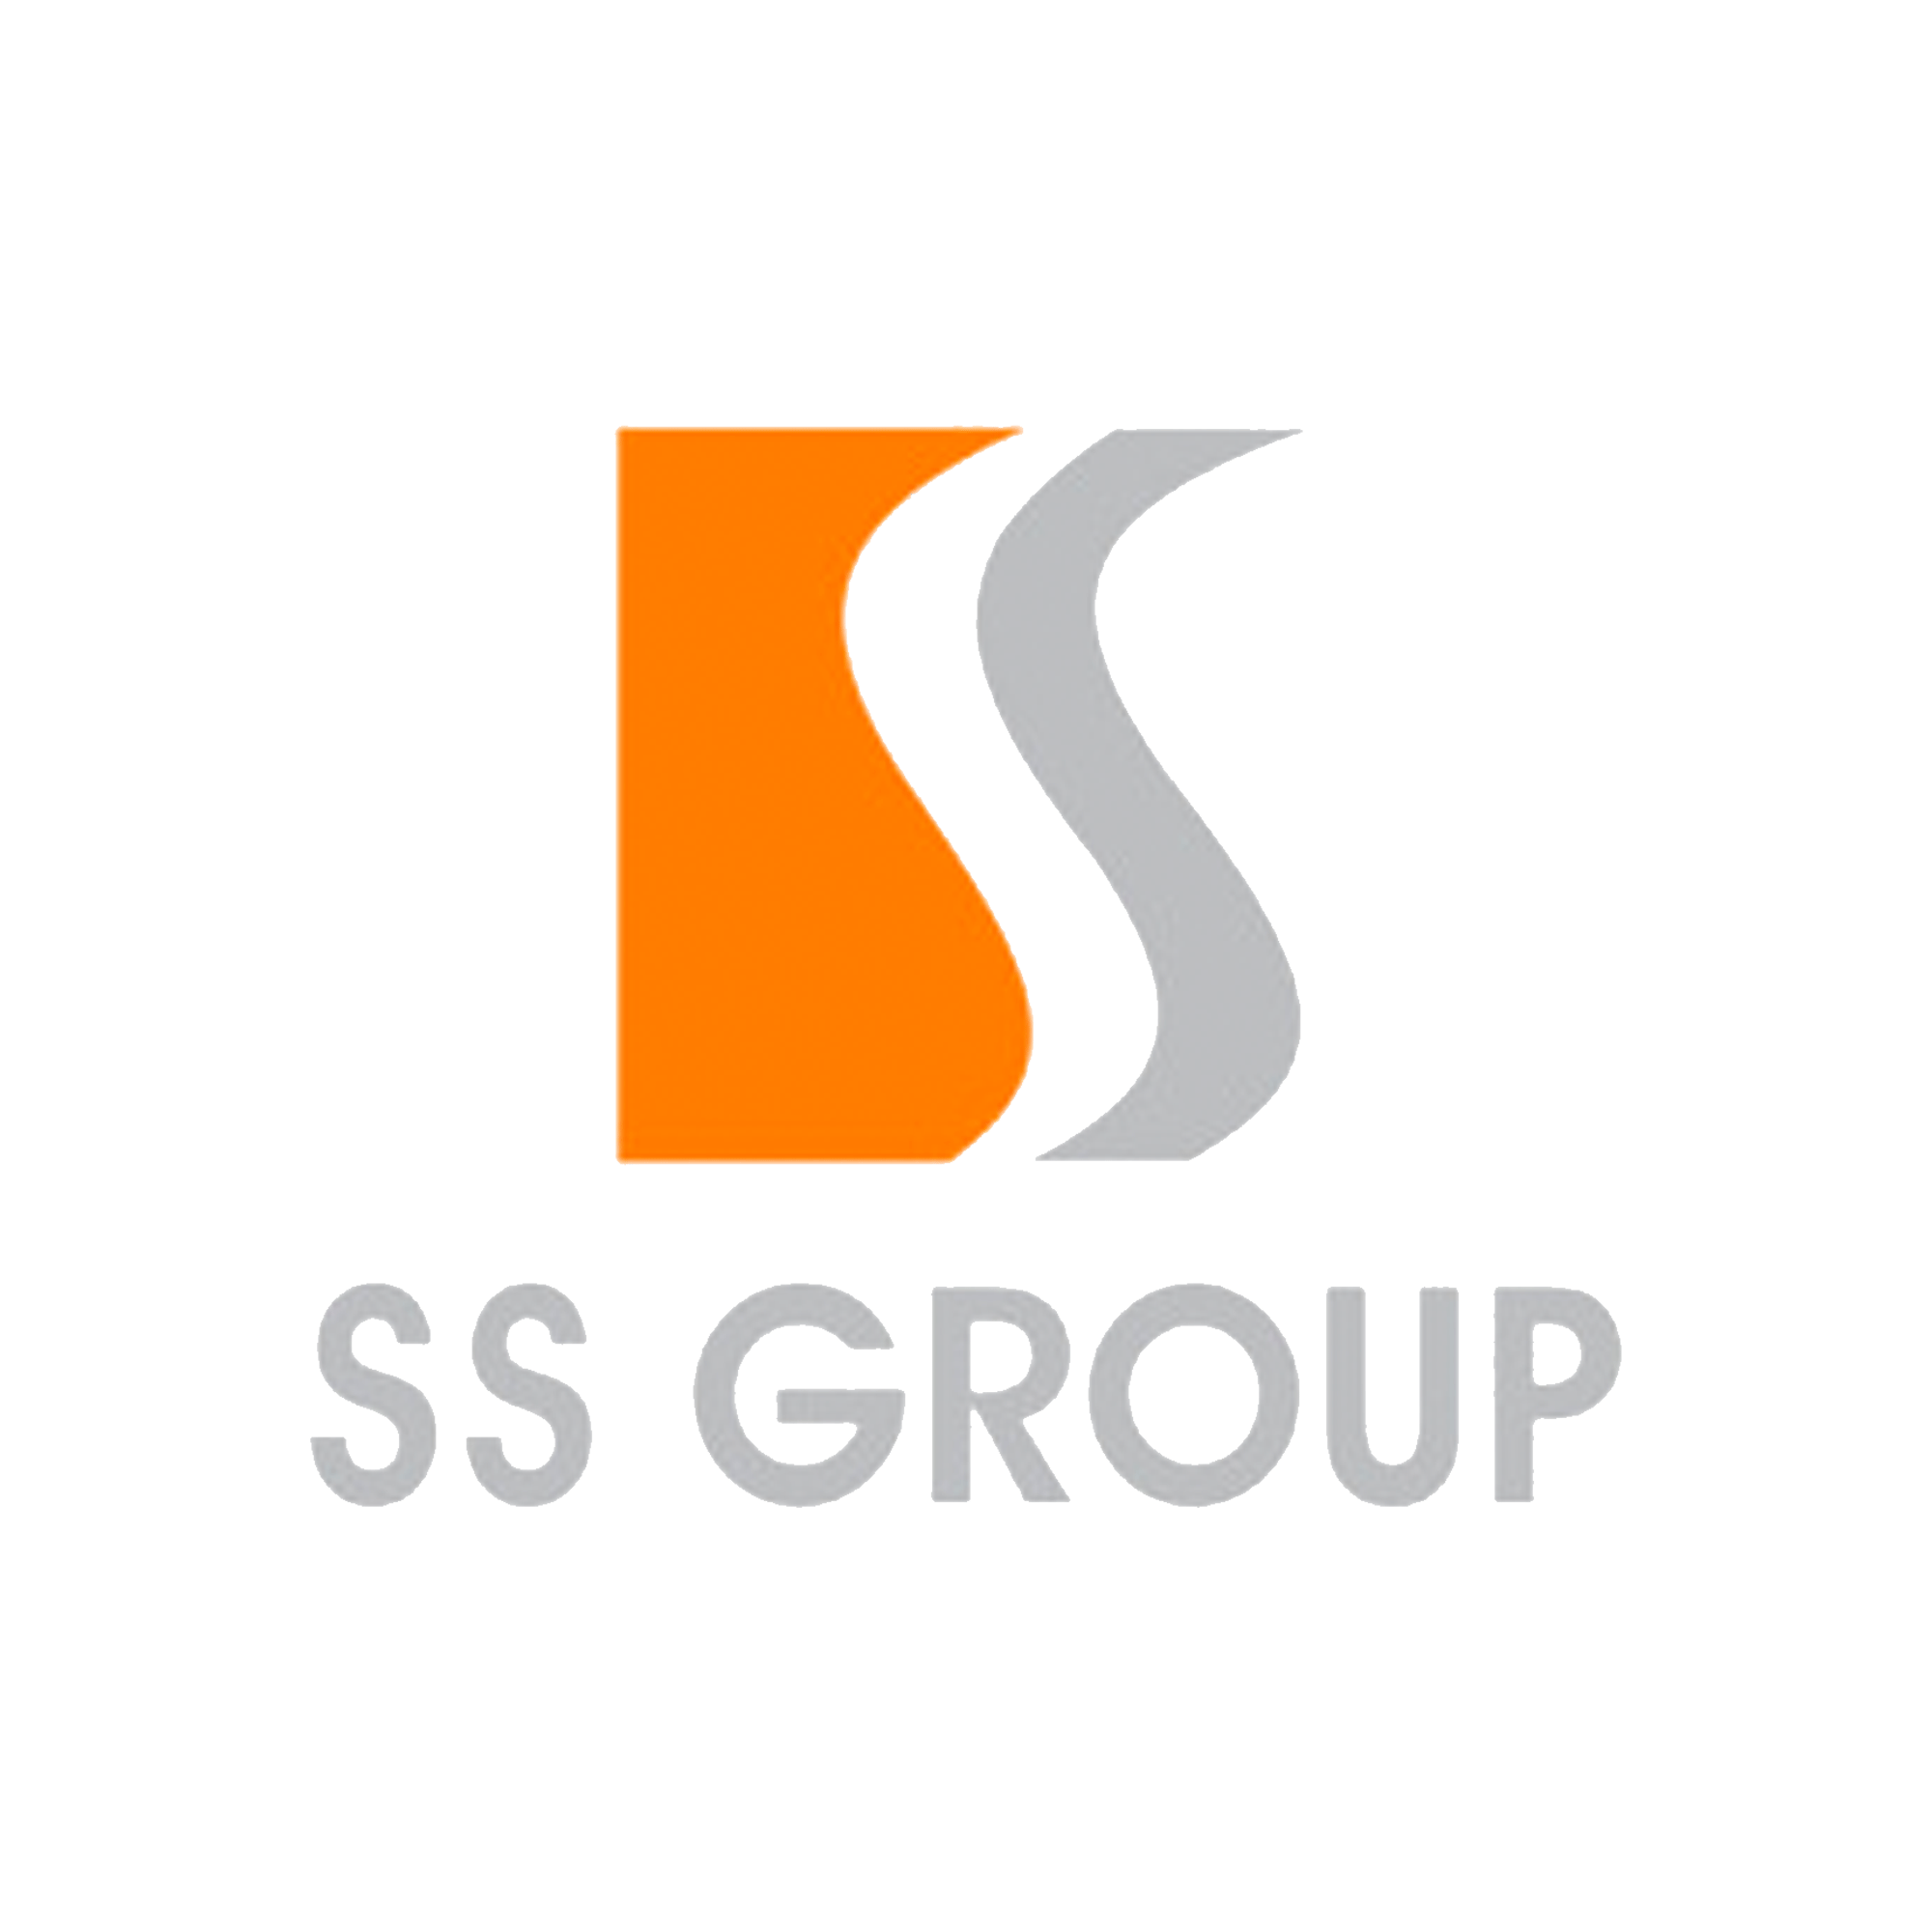 SS Group